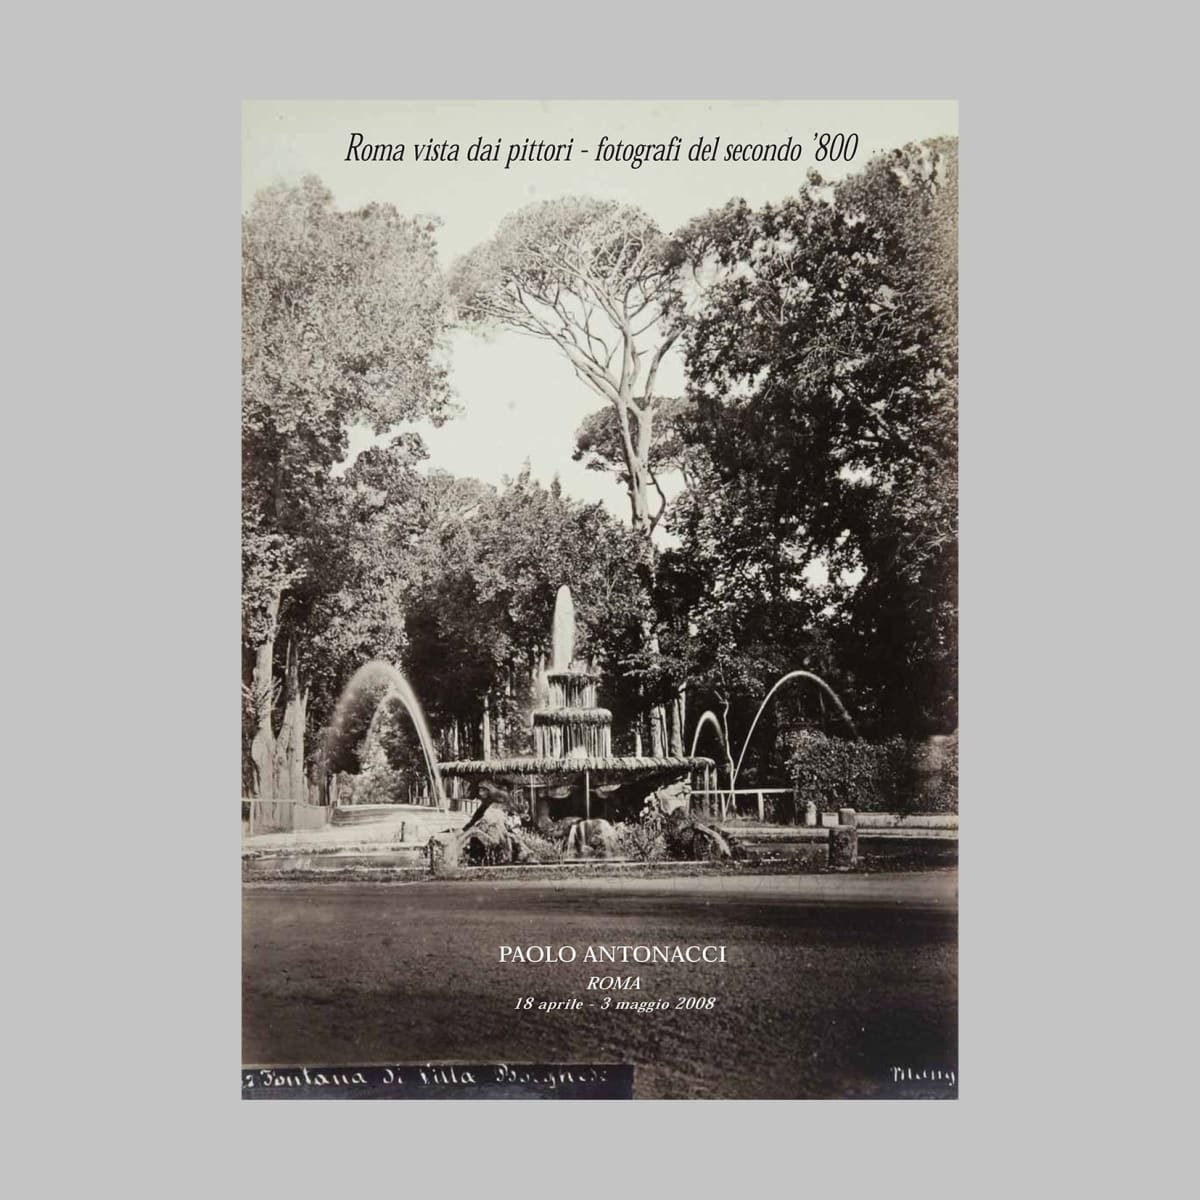 Rome seen by painters - photographers of the late 19th century